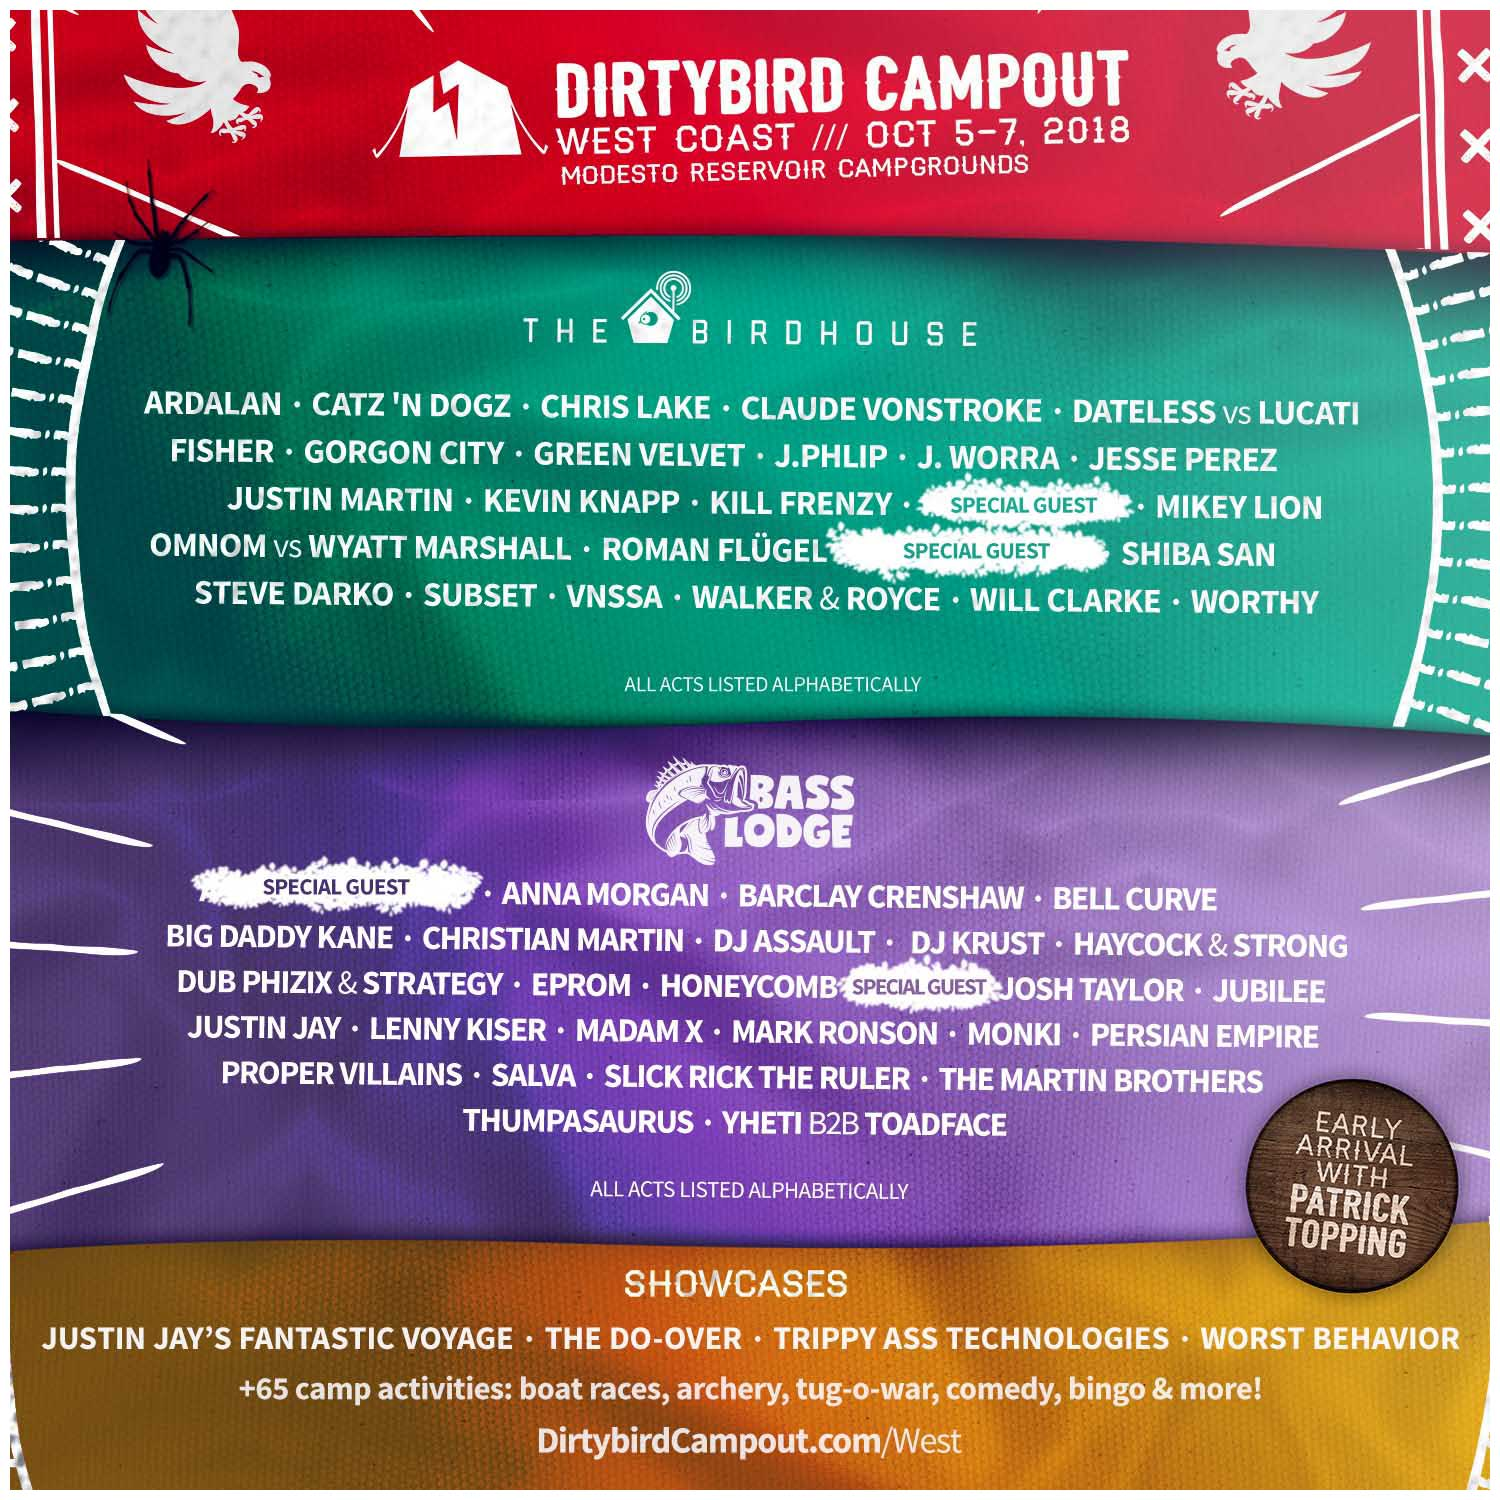 Dirtybird Campout West Lineup